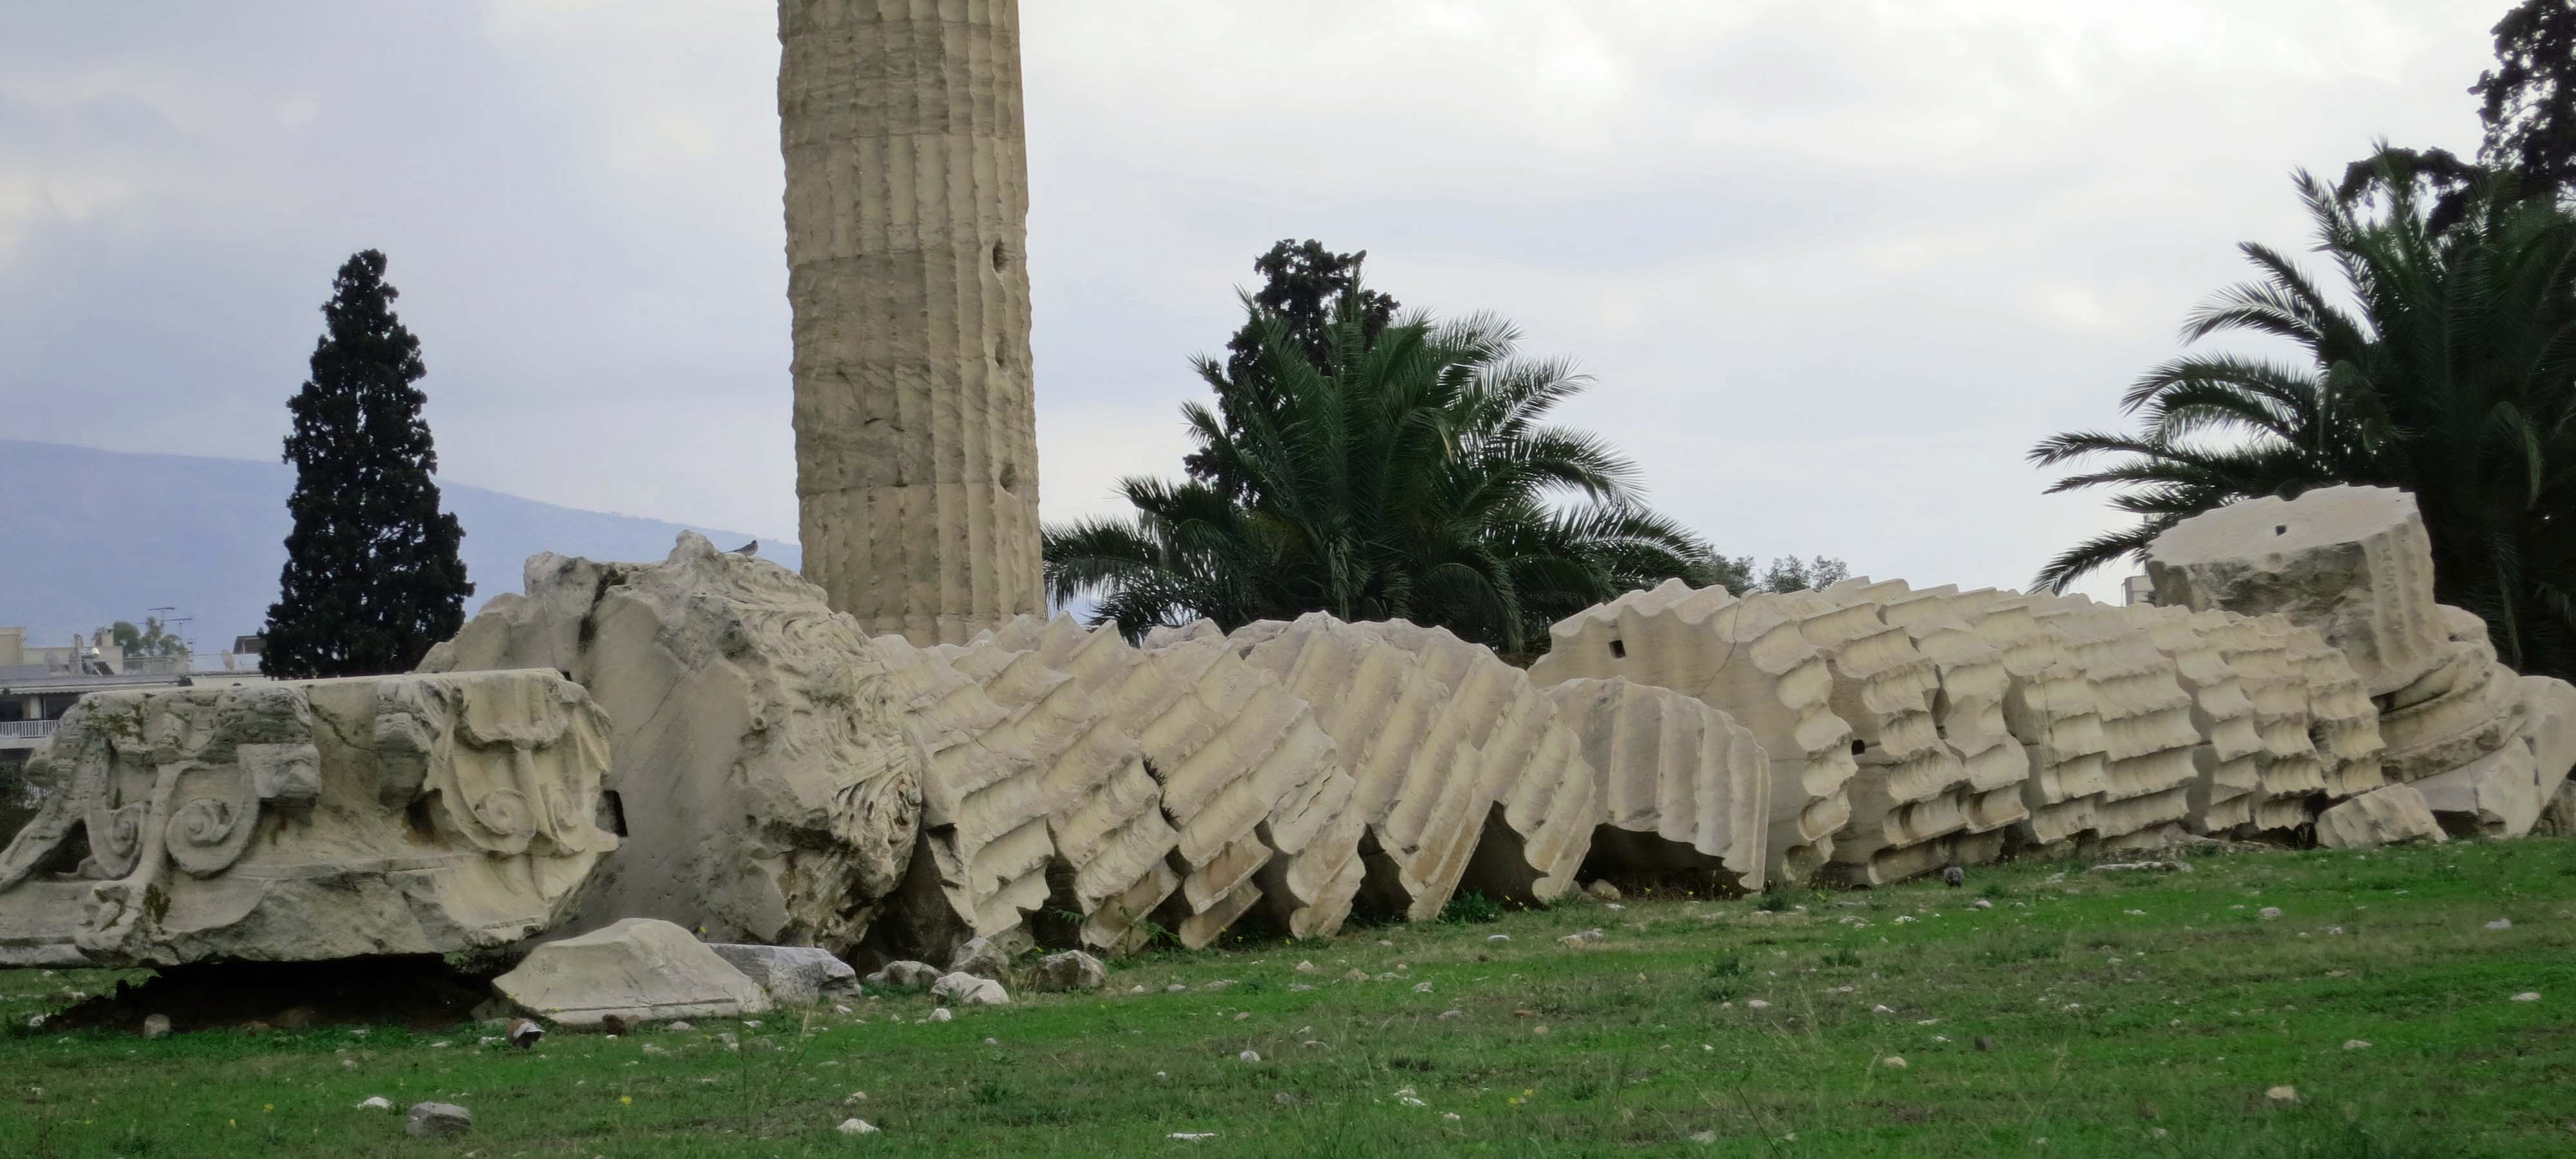 In 1852 a storm topped one of the massive columns from the Temple of Zeus and it has remained there ever since.